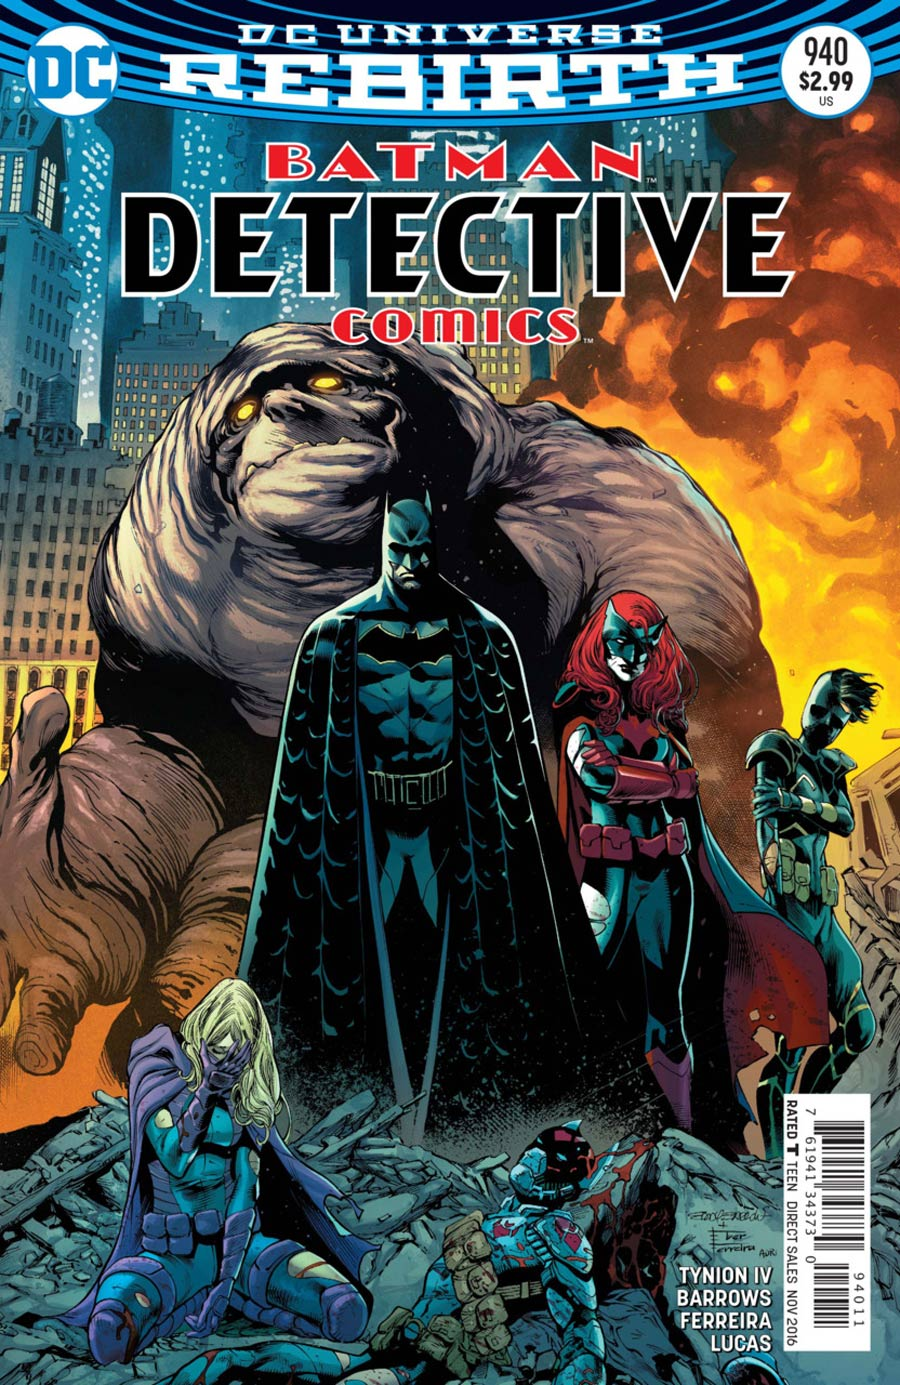 Batman - Detective Comics 940 - Rise of the Batmen: The Red Badge of Courage